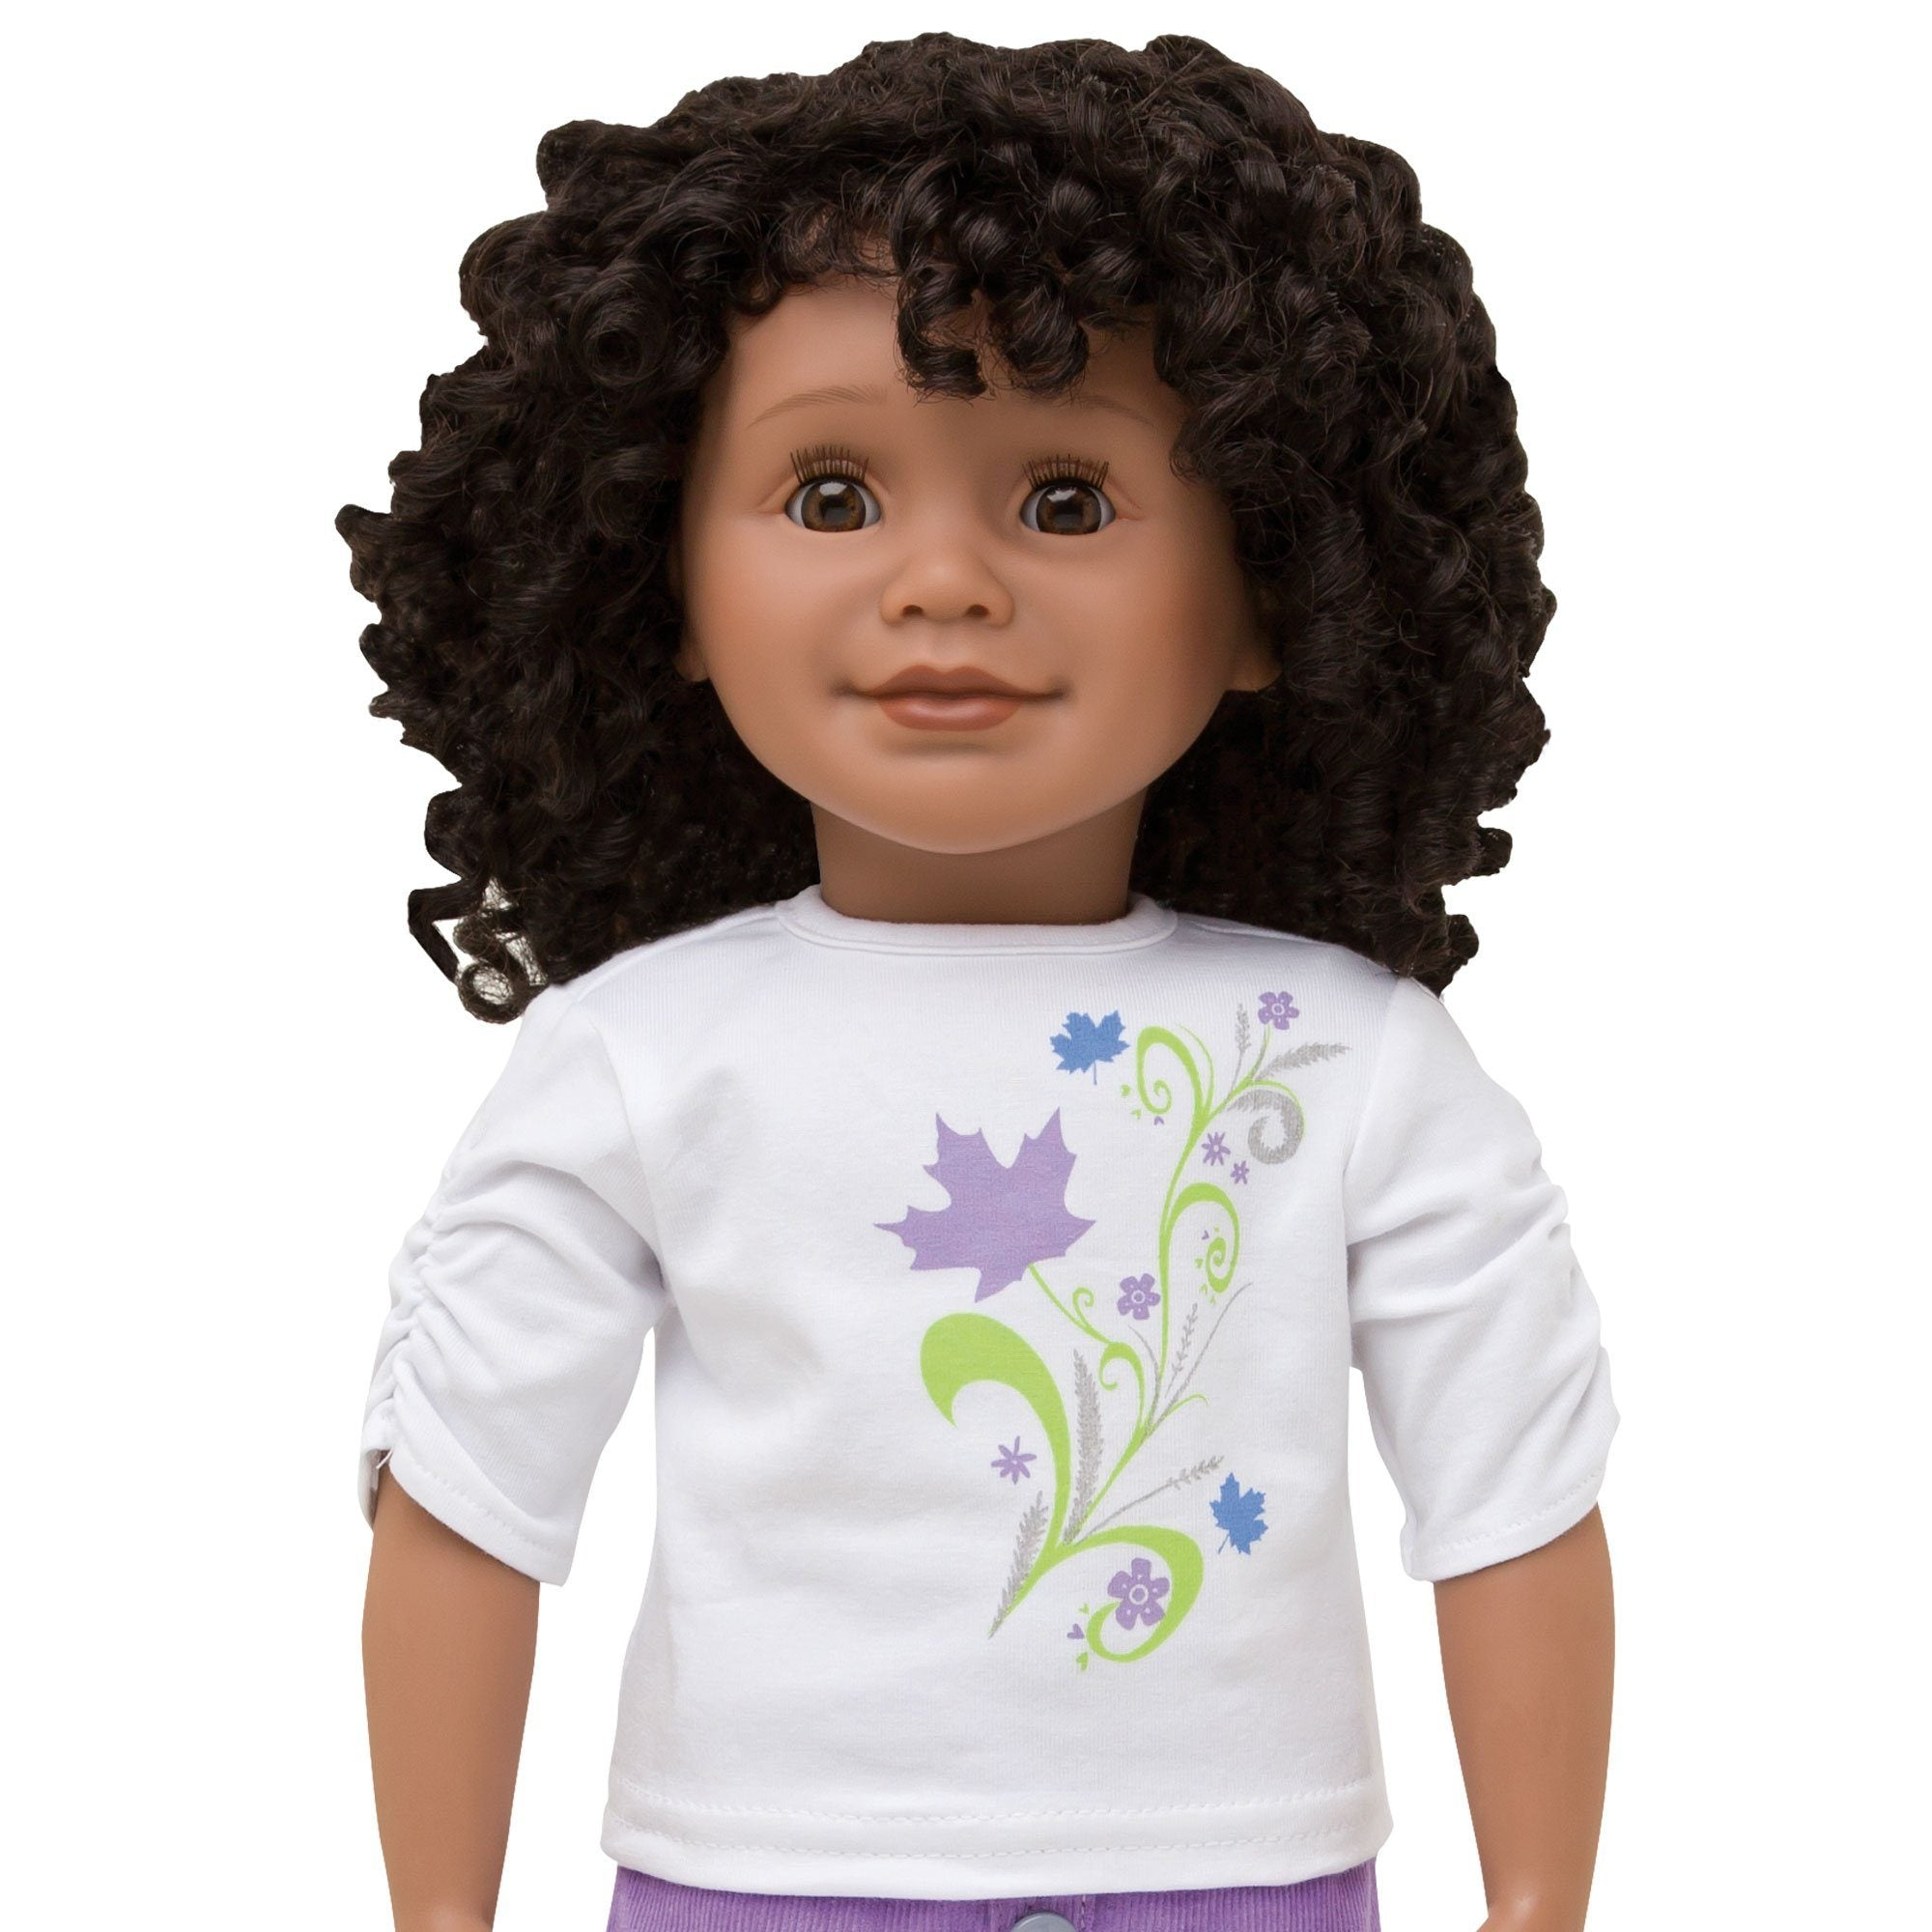 Kmf11 Maplelea Friend With Short Curly Black Brown Hair Medium Dark Skin Brown Eyes